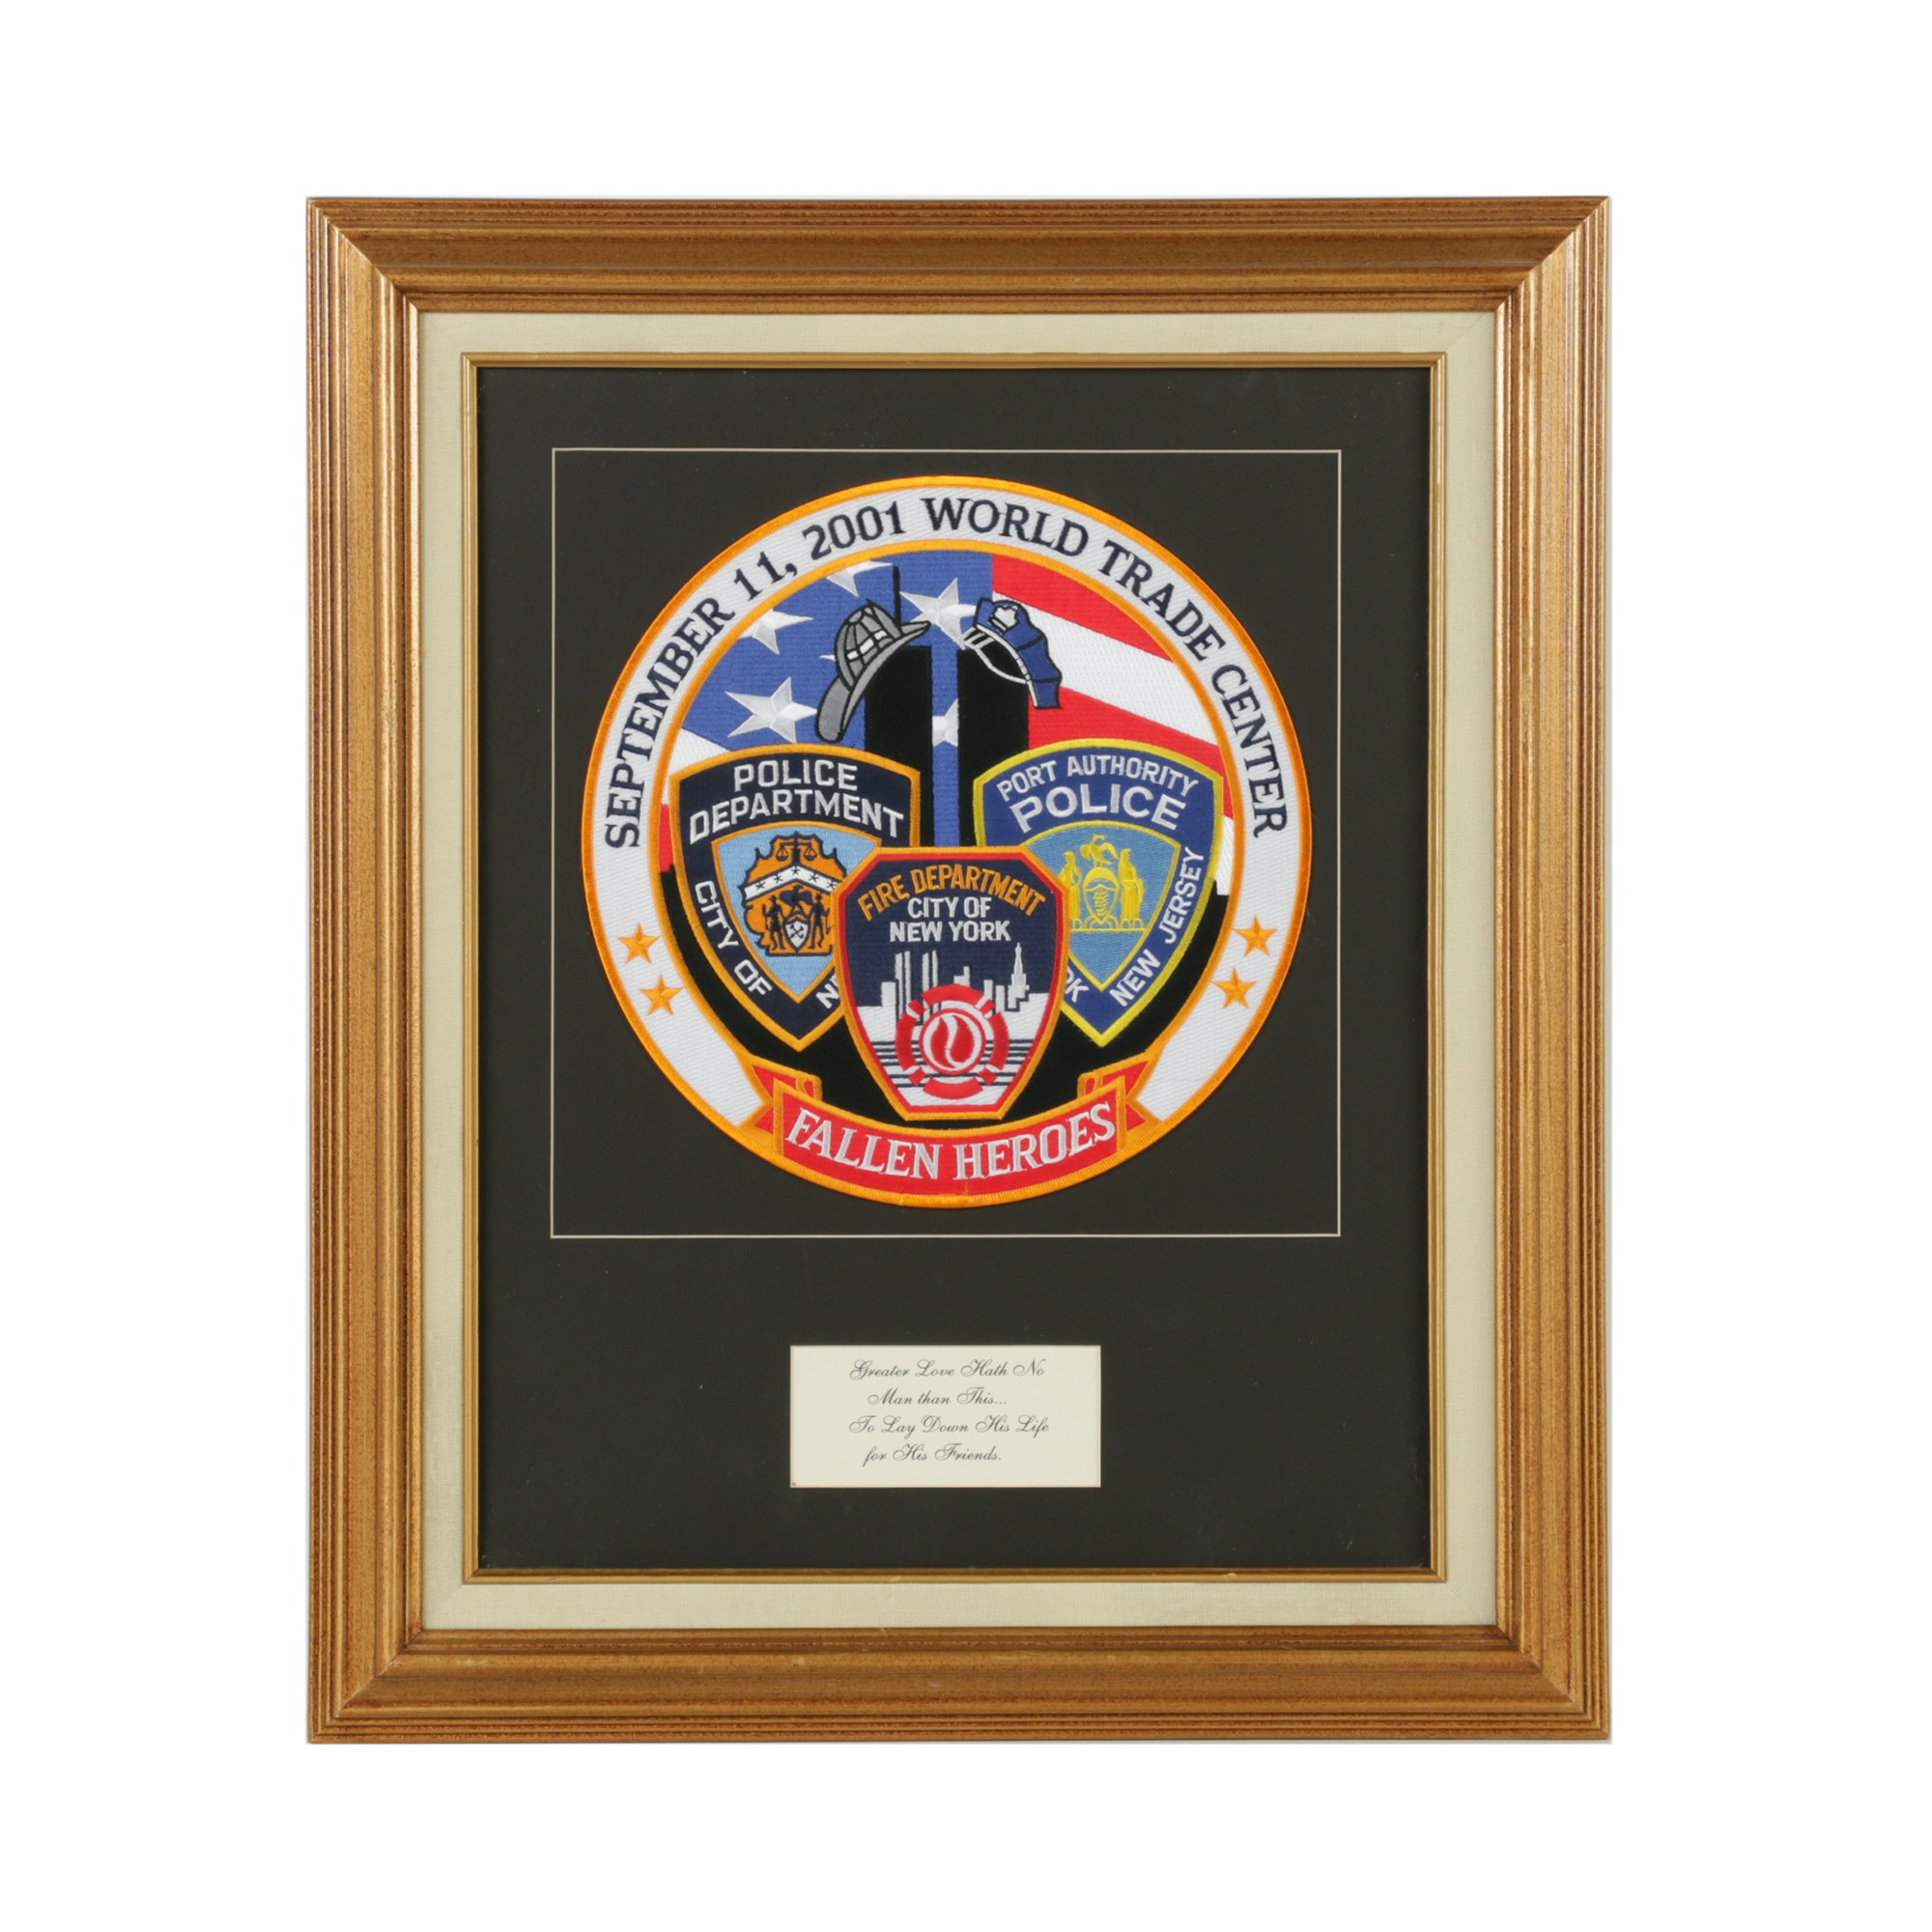 Embroidered Patch Commemorating Fallen Heroes of 9/11